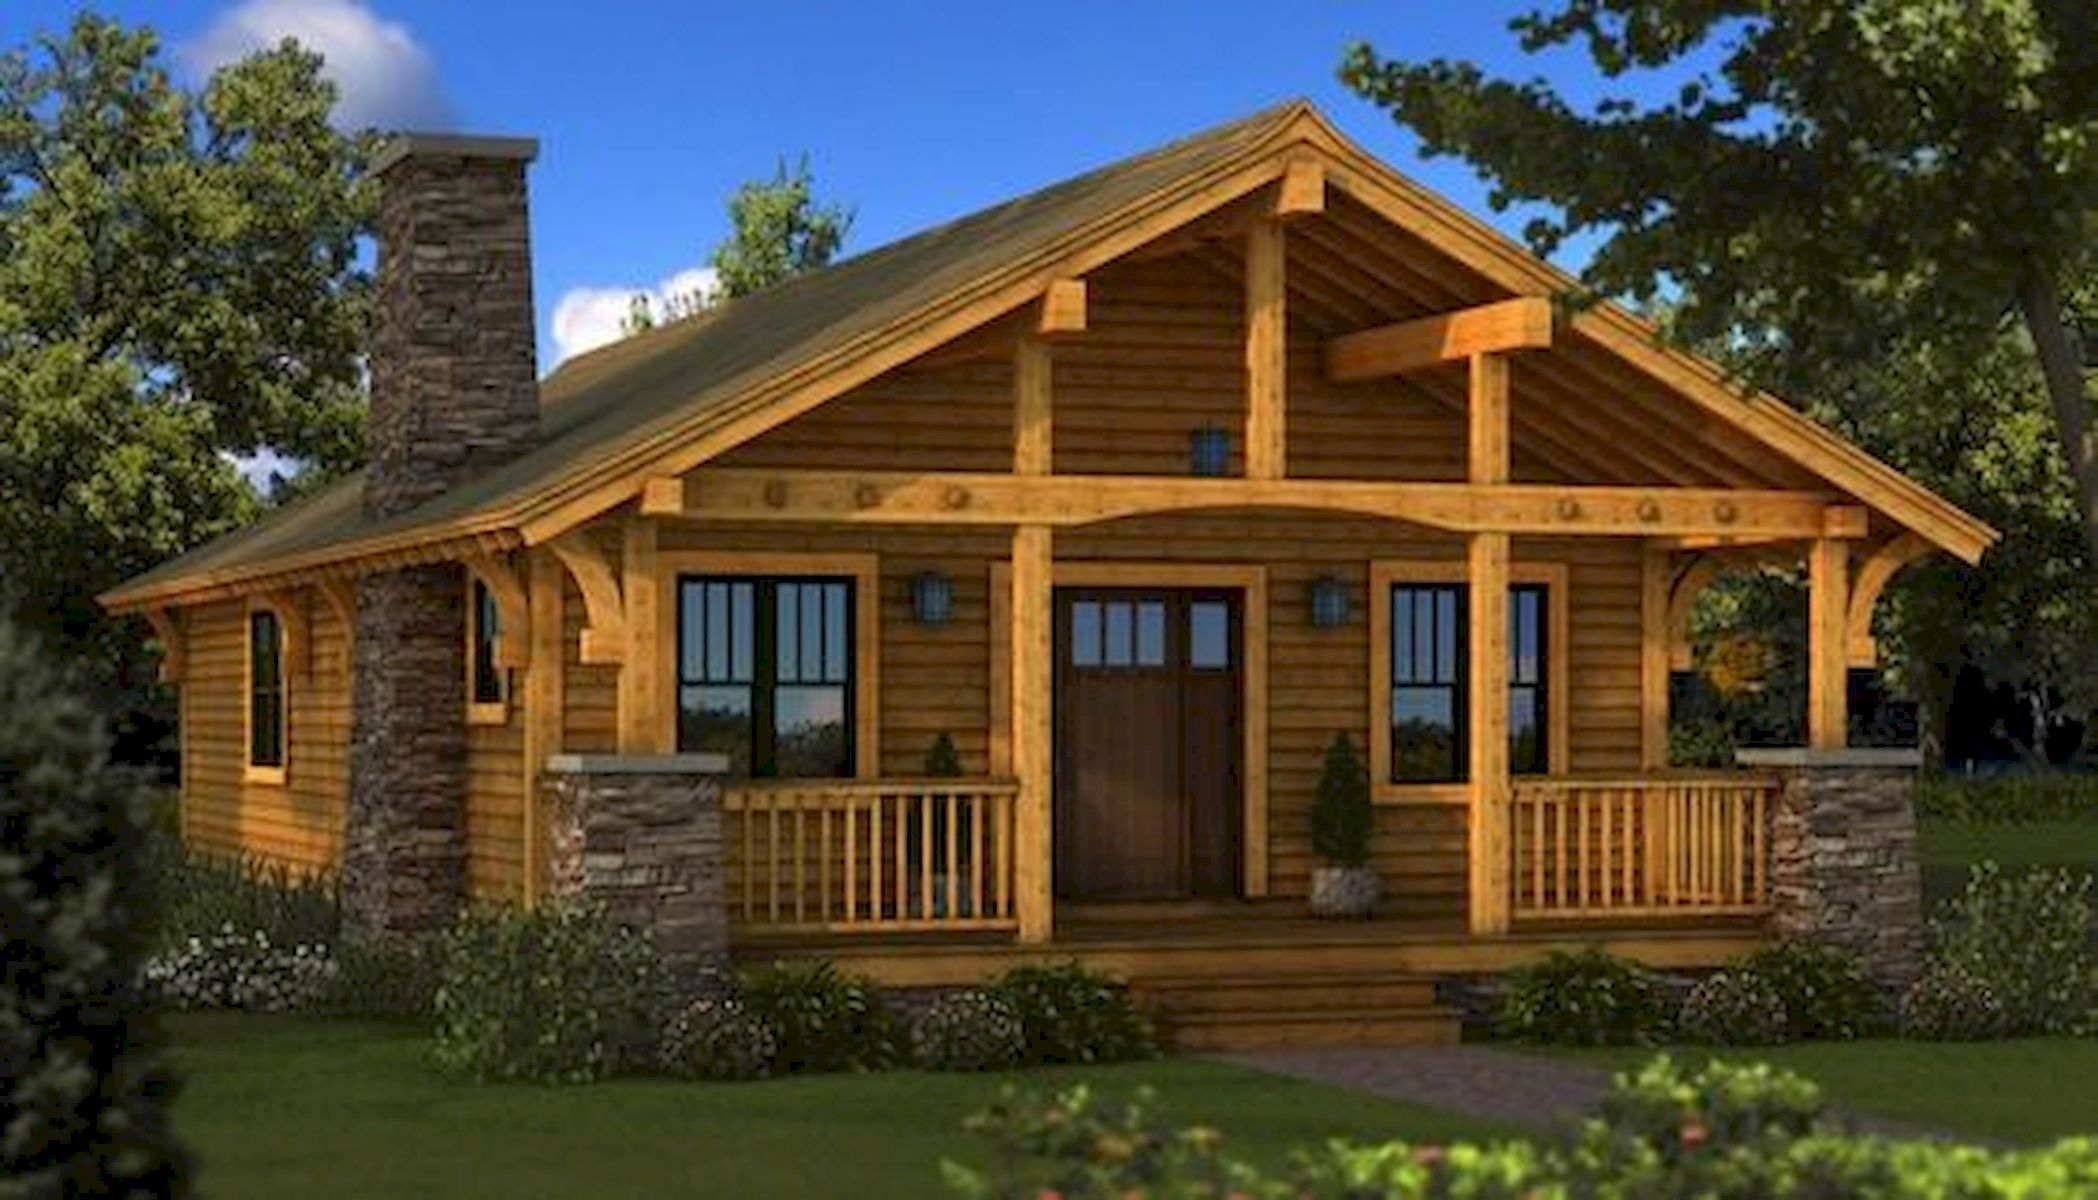 Nice 40 Stunning Log Cabin Homes Plans One Story Design Ideas Https Livingmarch Com 40 Stunning Log Cab Log Cabin Floor Plans Log Cabin Plans Cabin Kit Homes